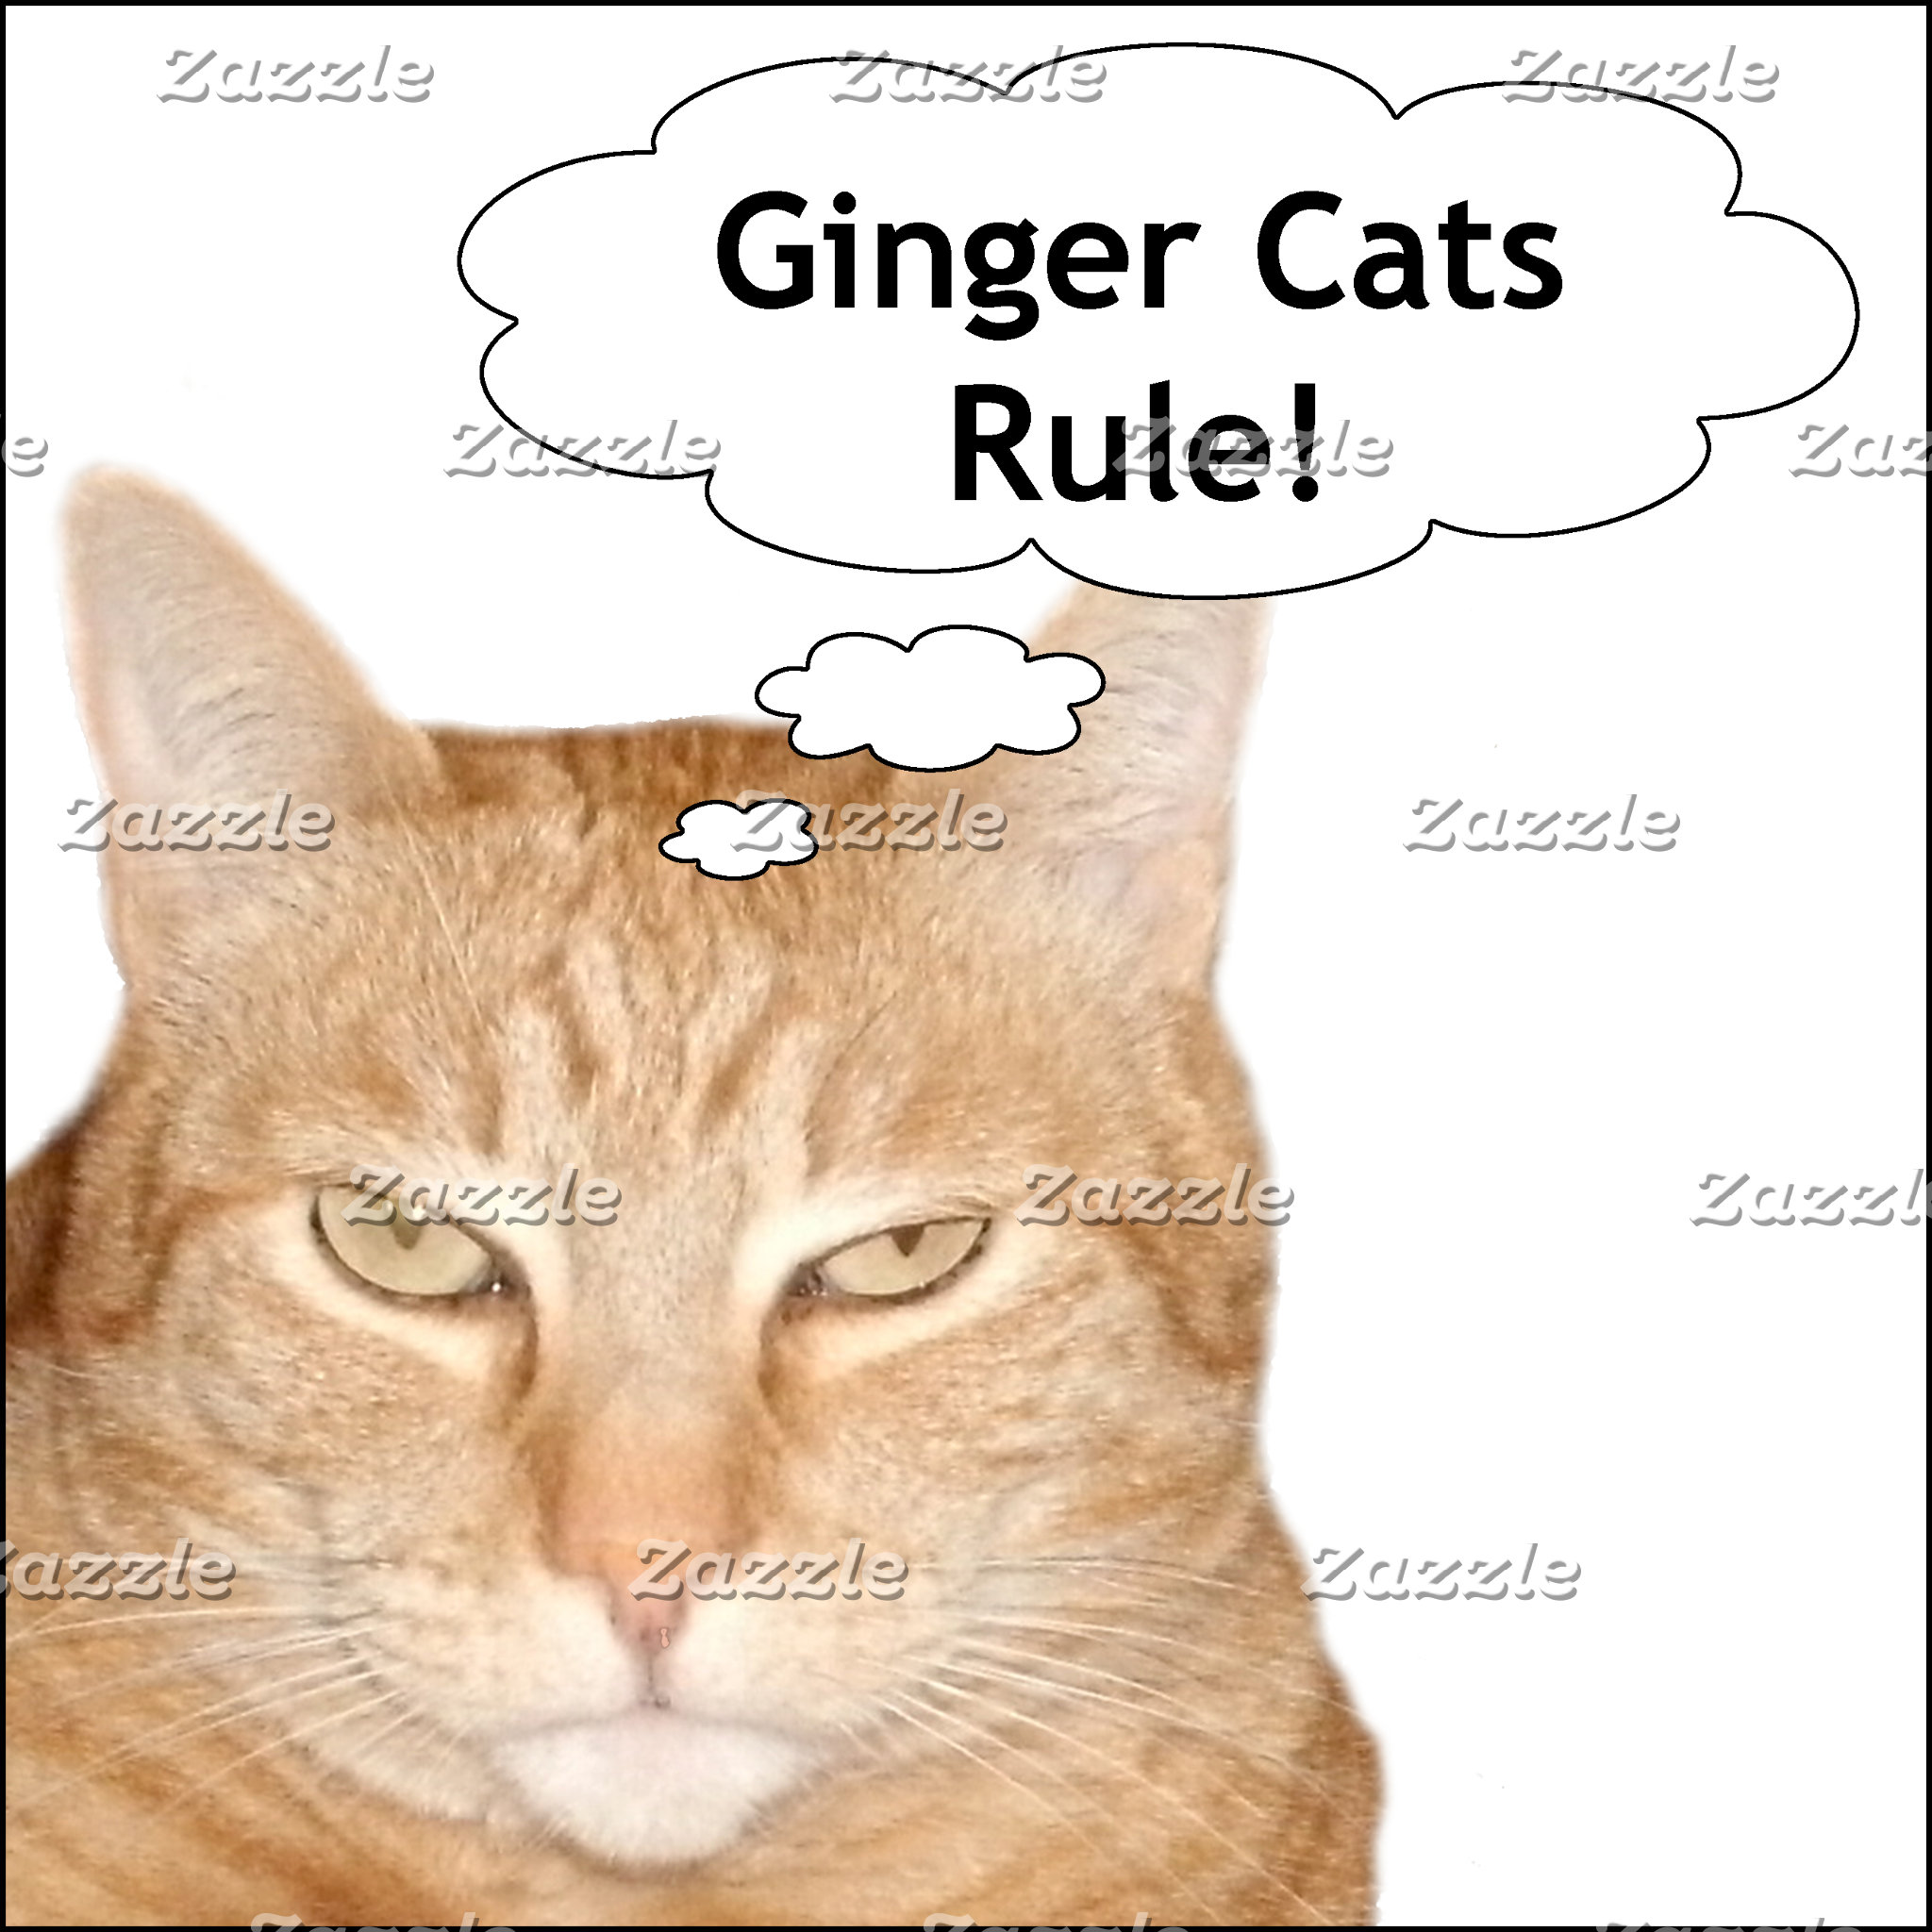 Ginger Cats Rule!